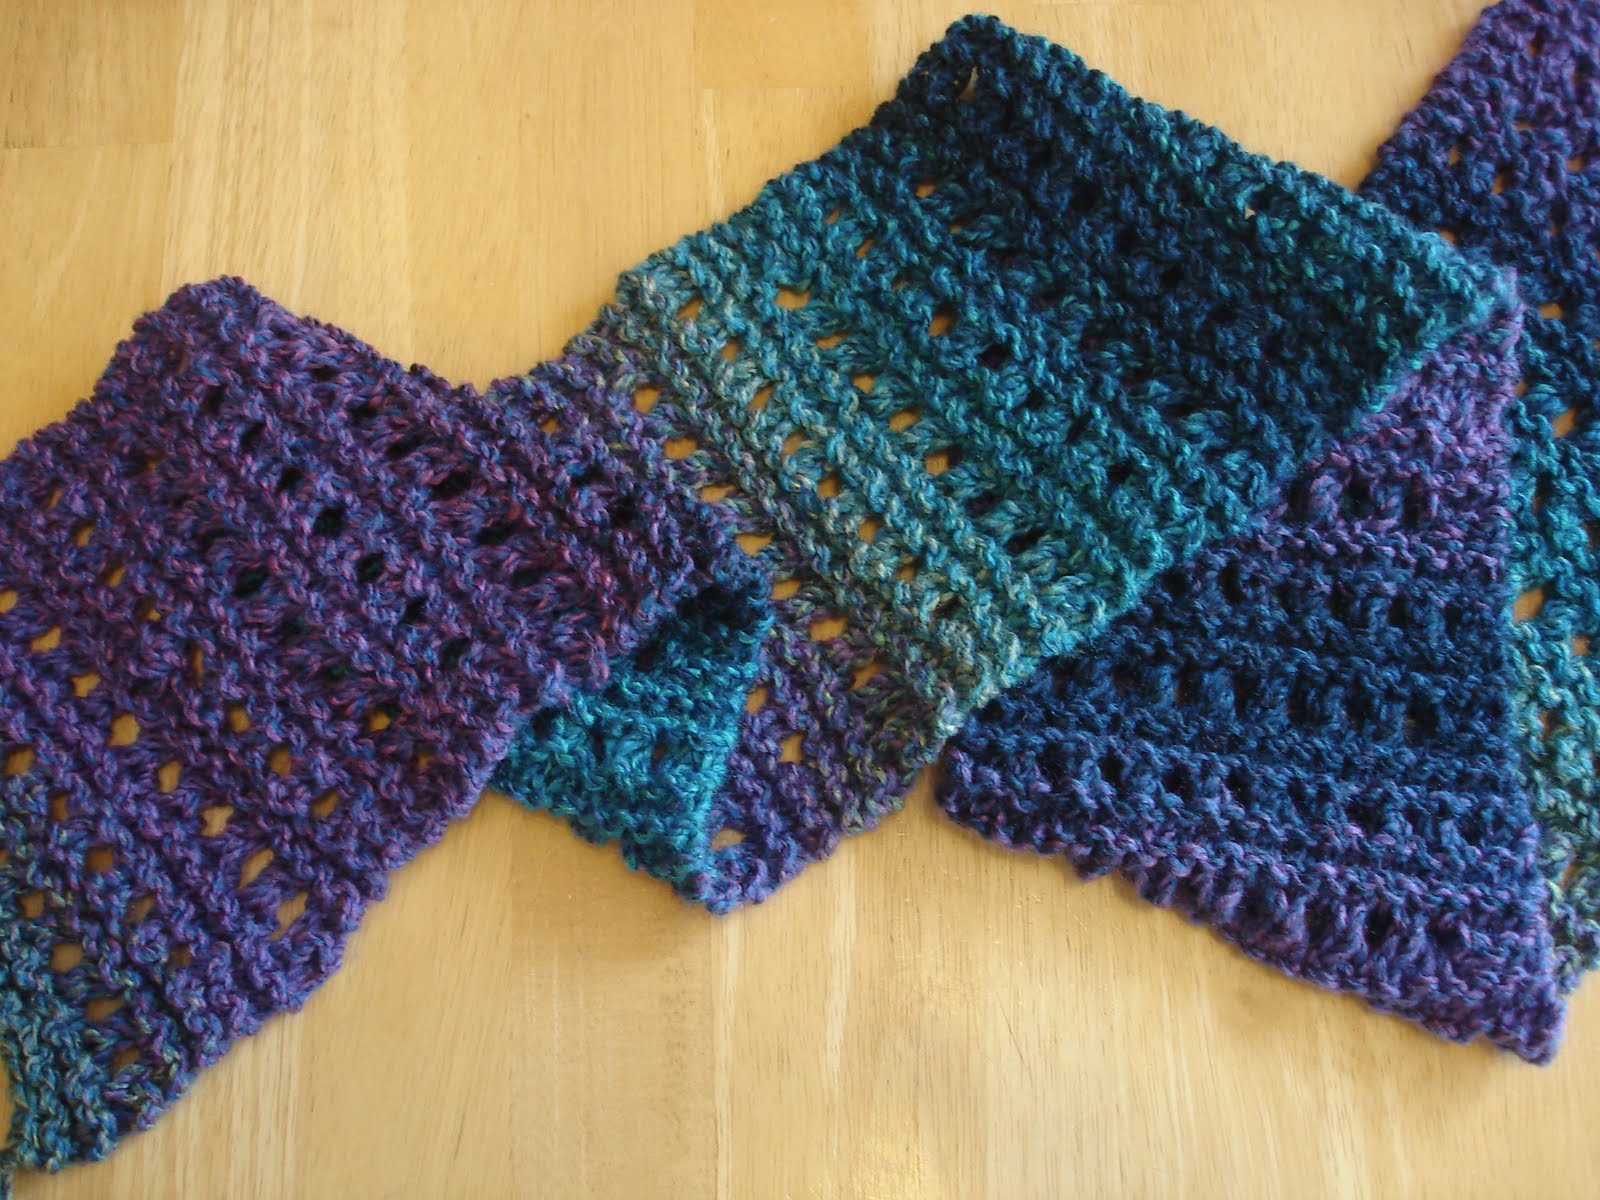 Knitting Patterns With Picture Instructions : Fiber Flux: Free Knitting Patterns